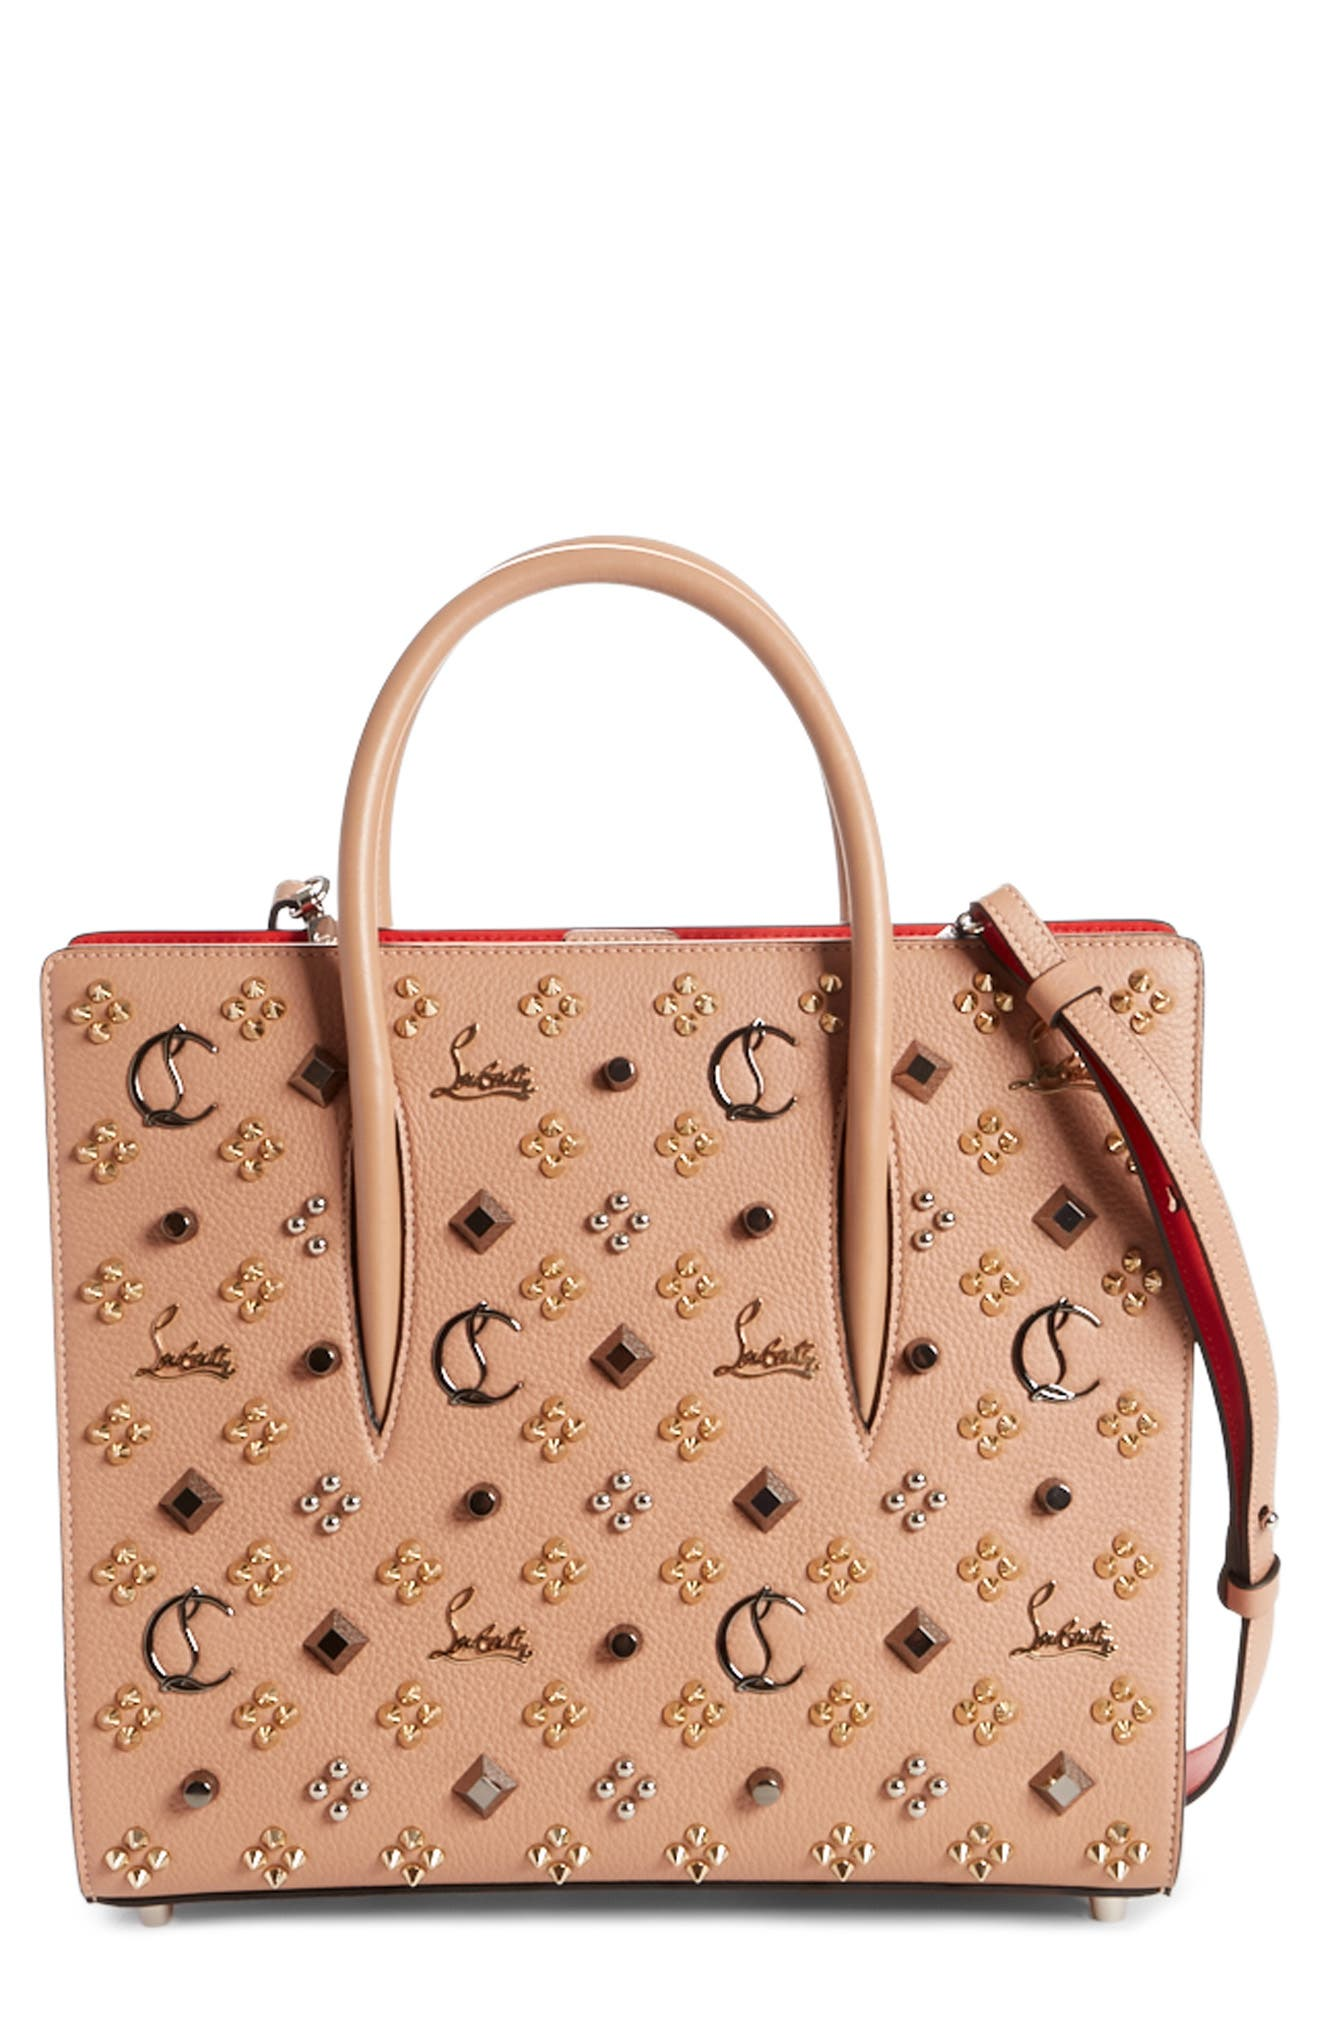 Main Image - Christian Louboutin Medium Paloma Leather Tote